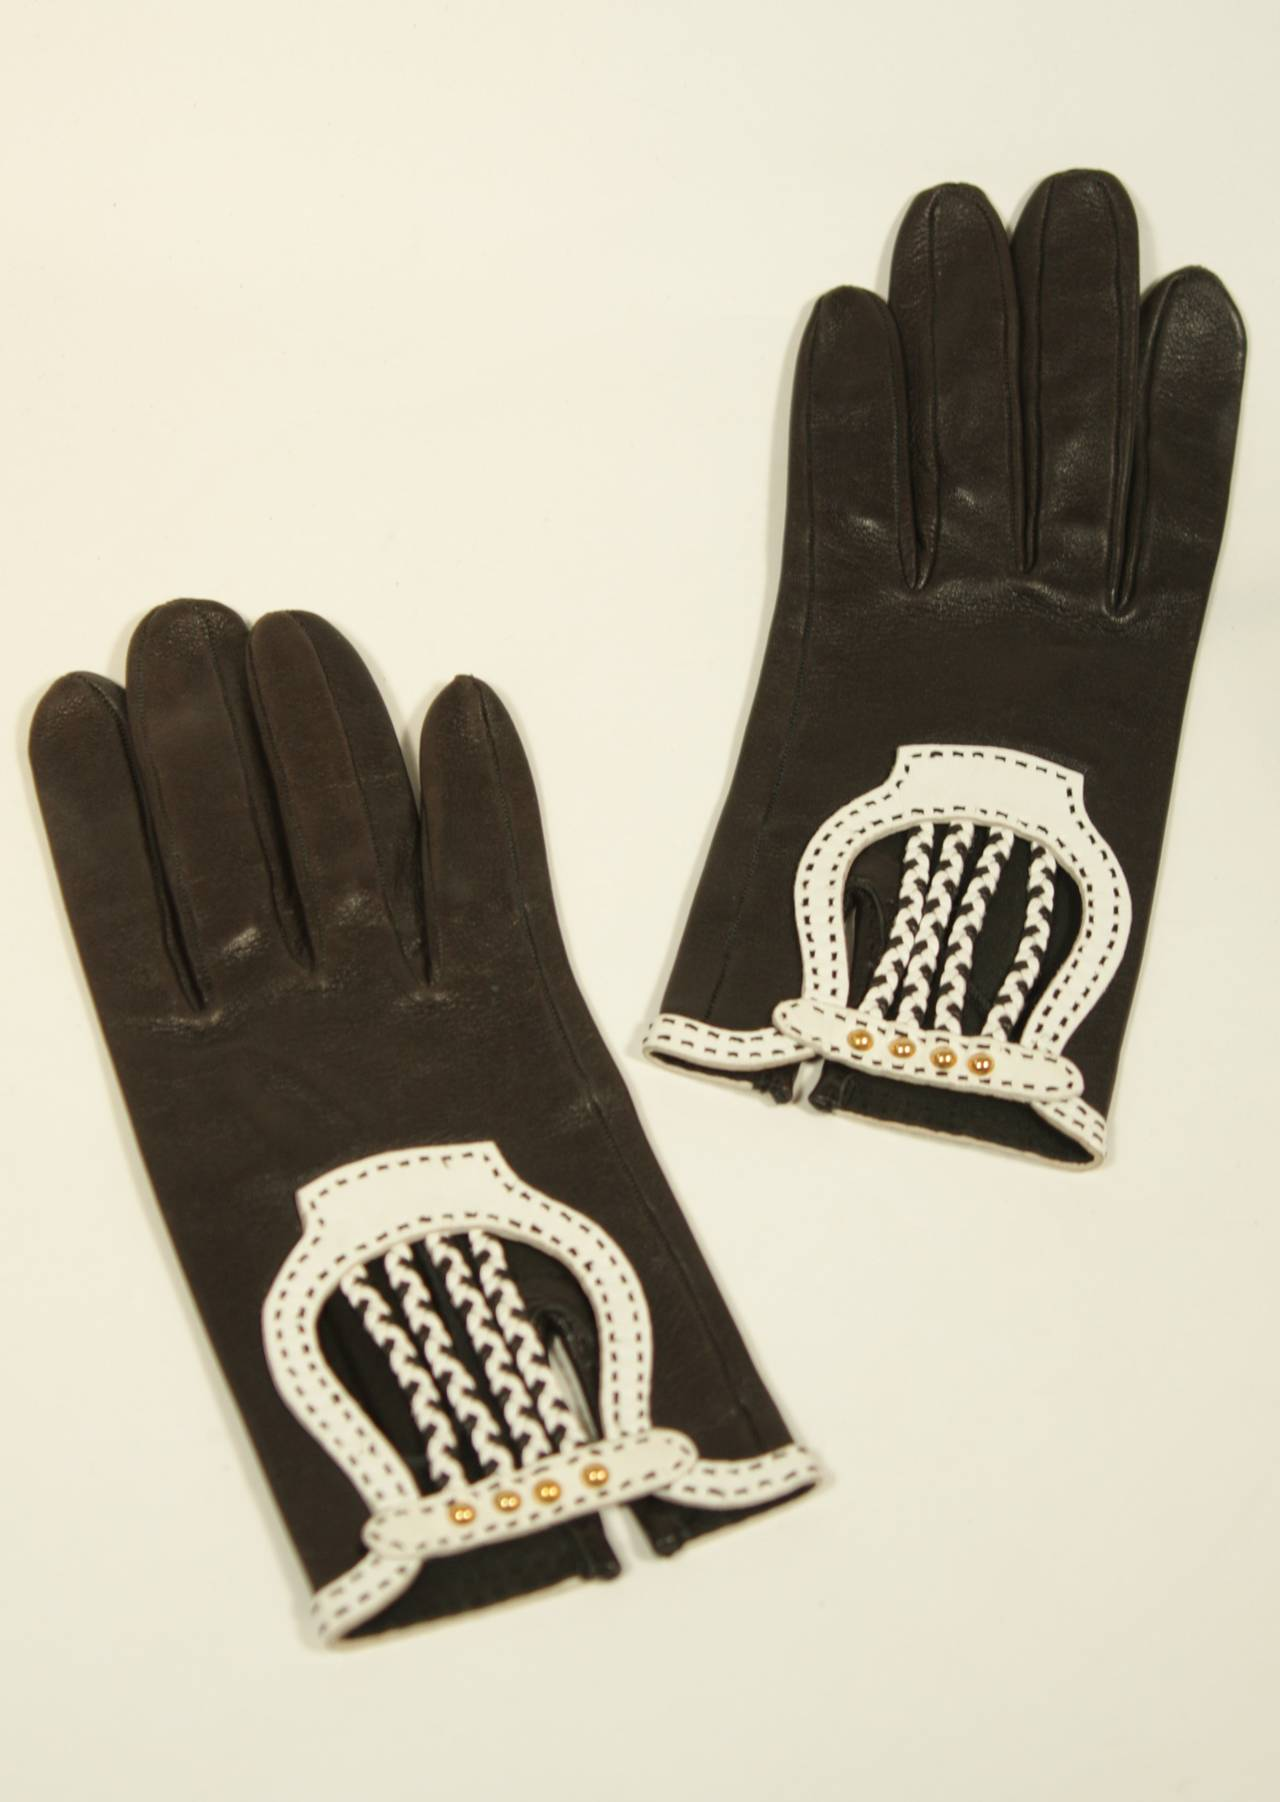 These Hermes gloves are composed of an exquisitely soft black leather with white accents and gold hardware. A beautiful design with braid detailing in excellent condition. Size 6.5